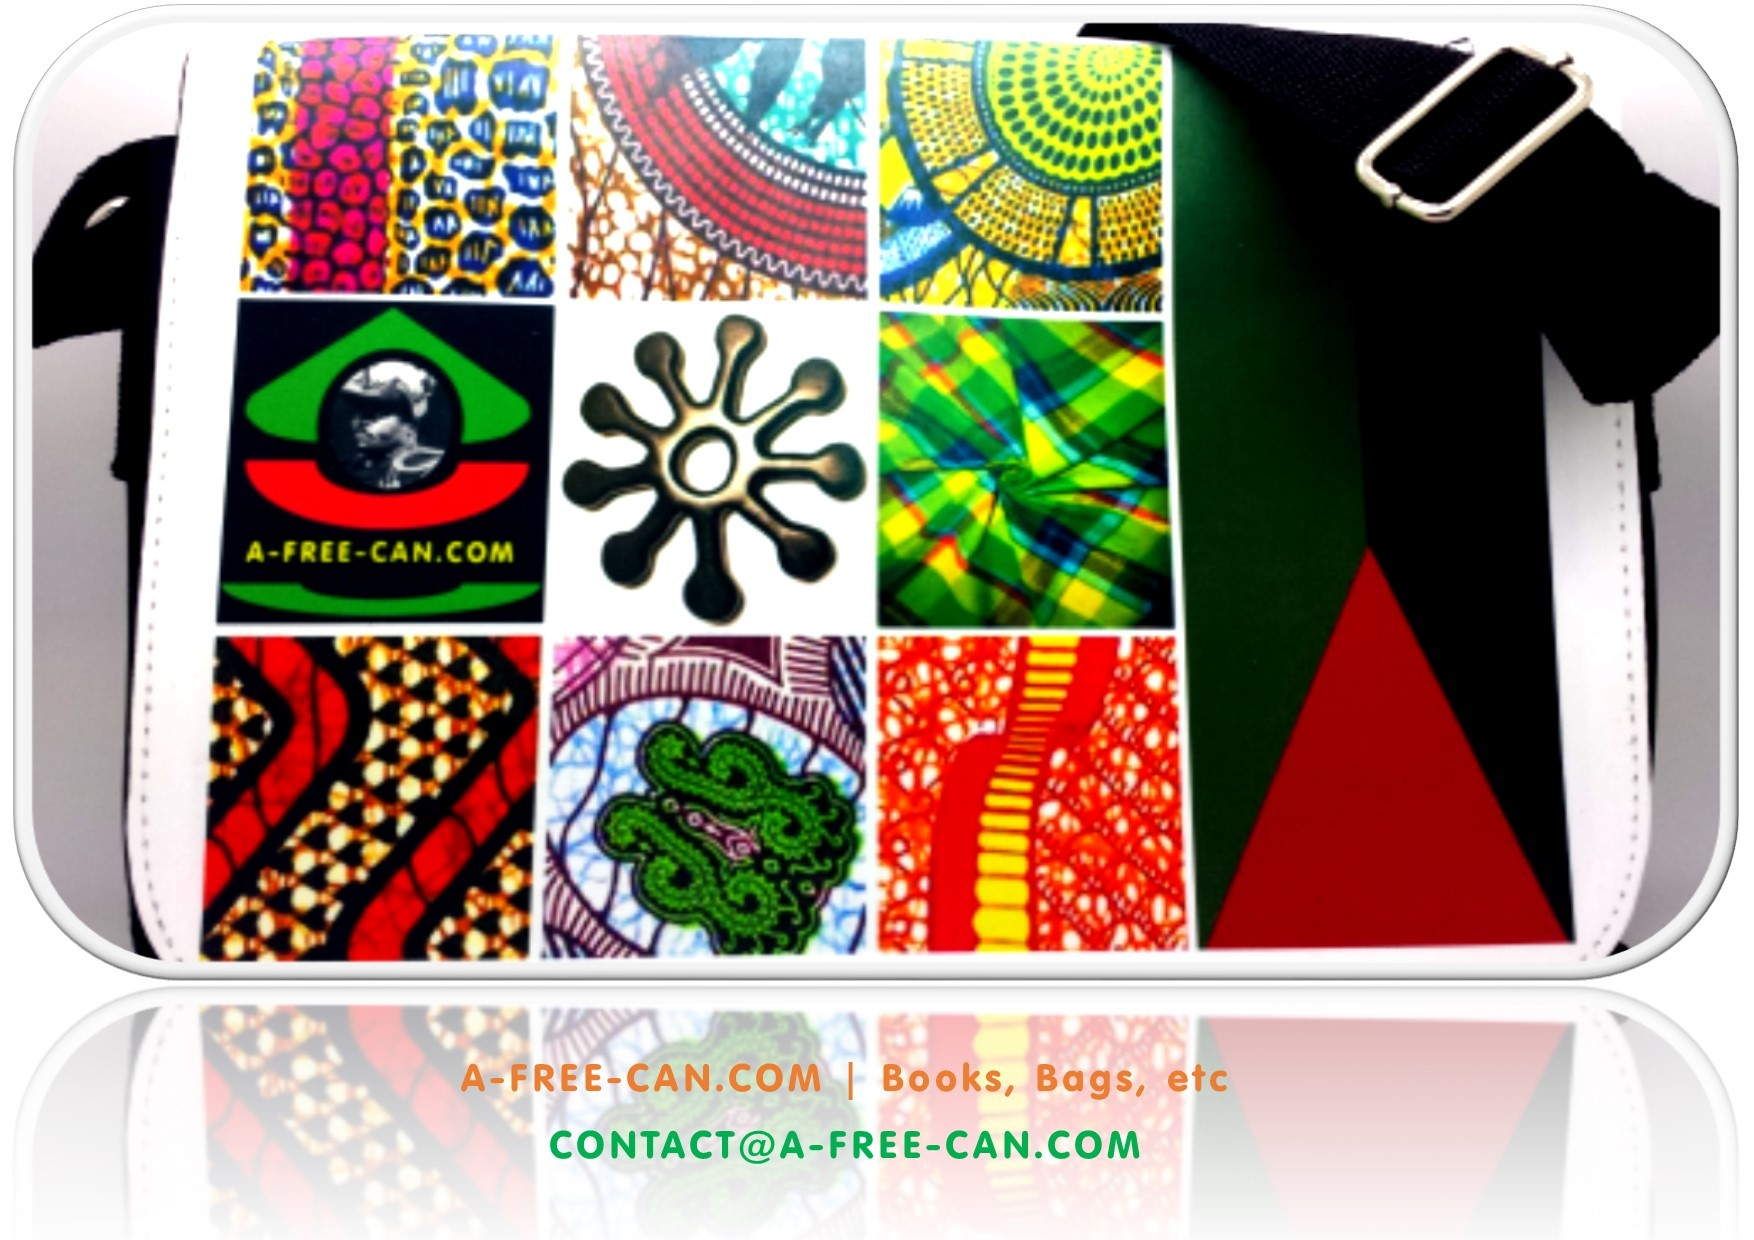 A-FREE-CAN.COM_Bags-Sacs_ANANSE_Adinkra_PROMO.Recupere